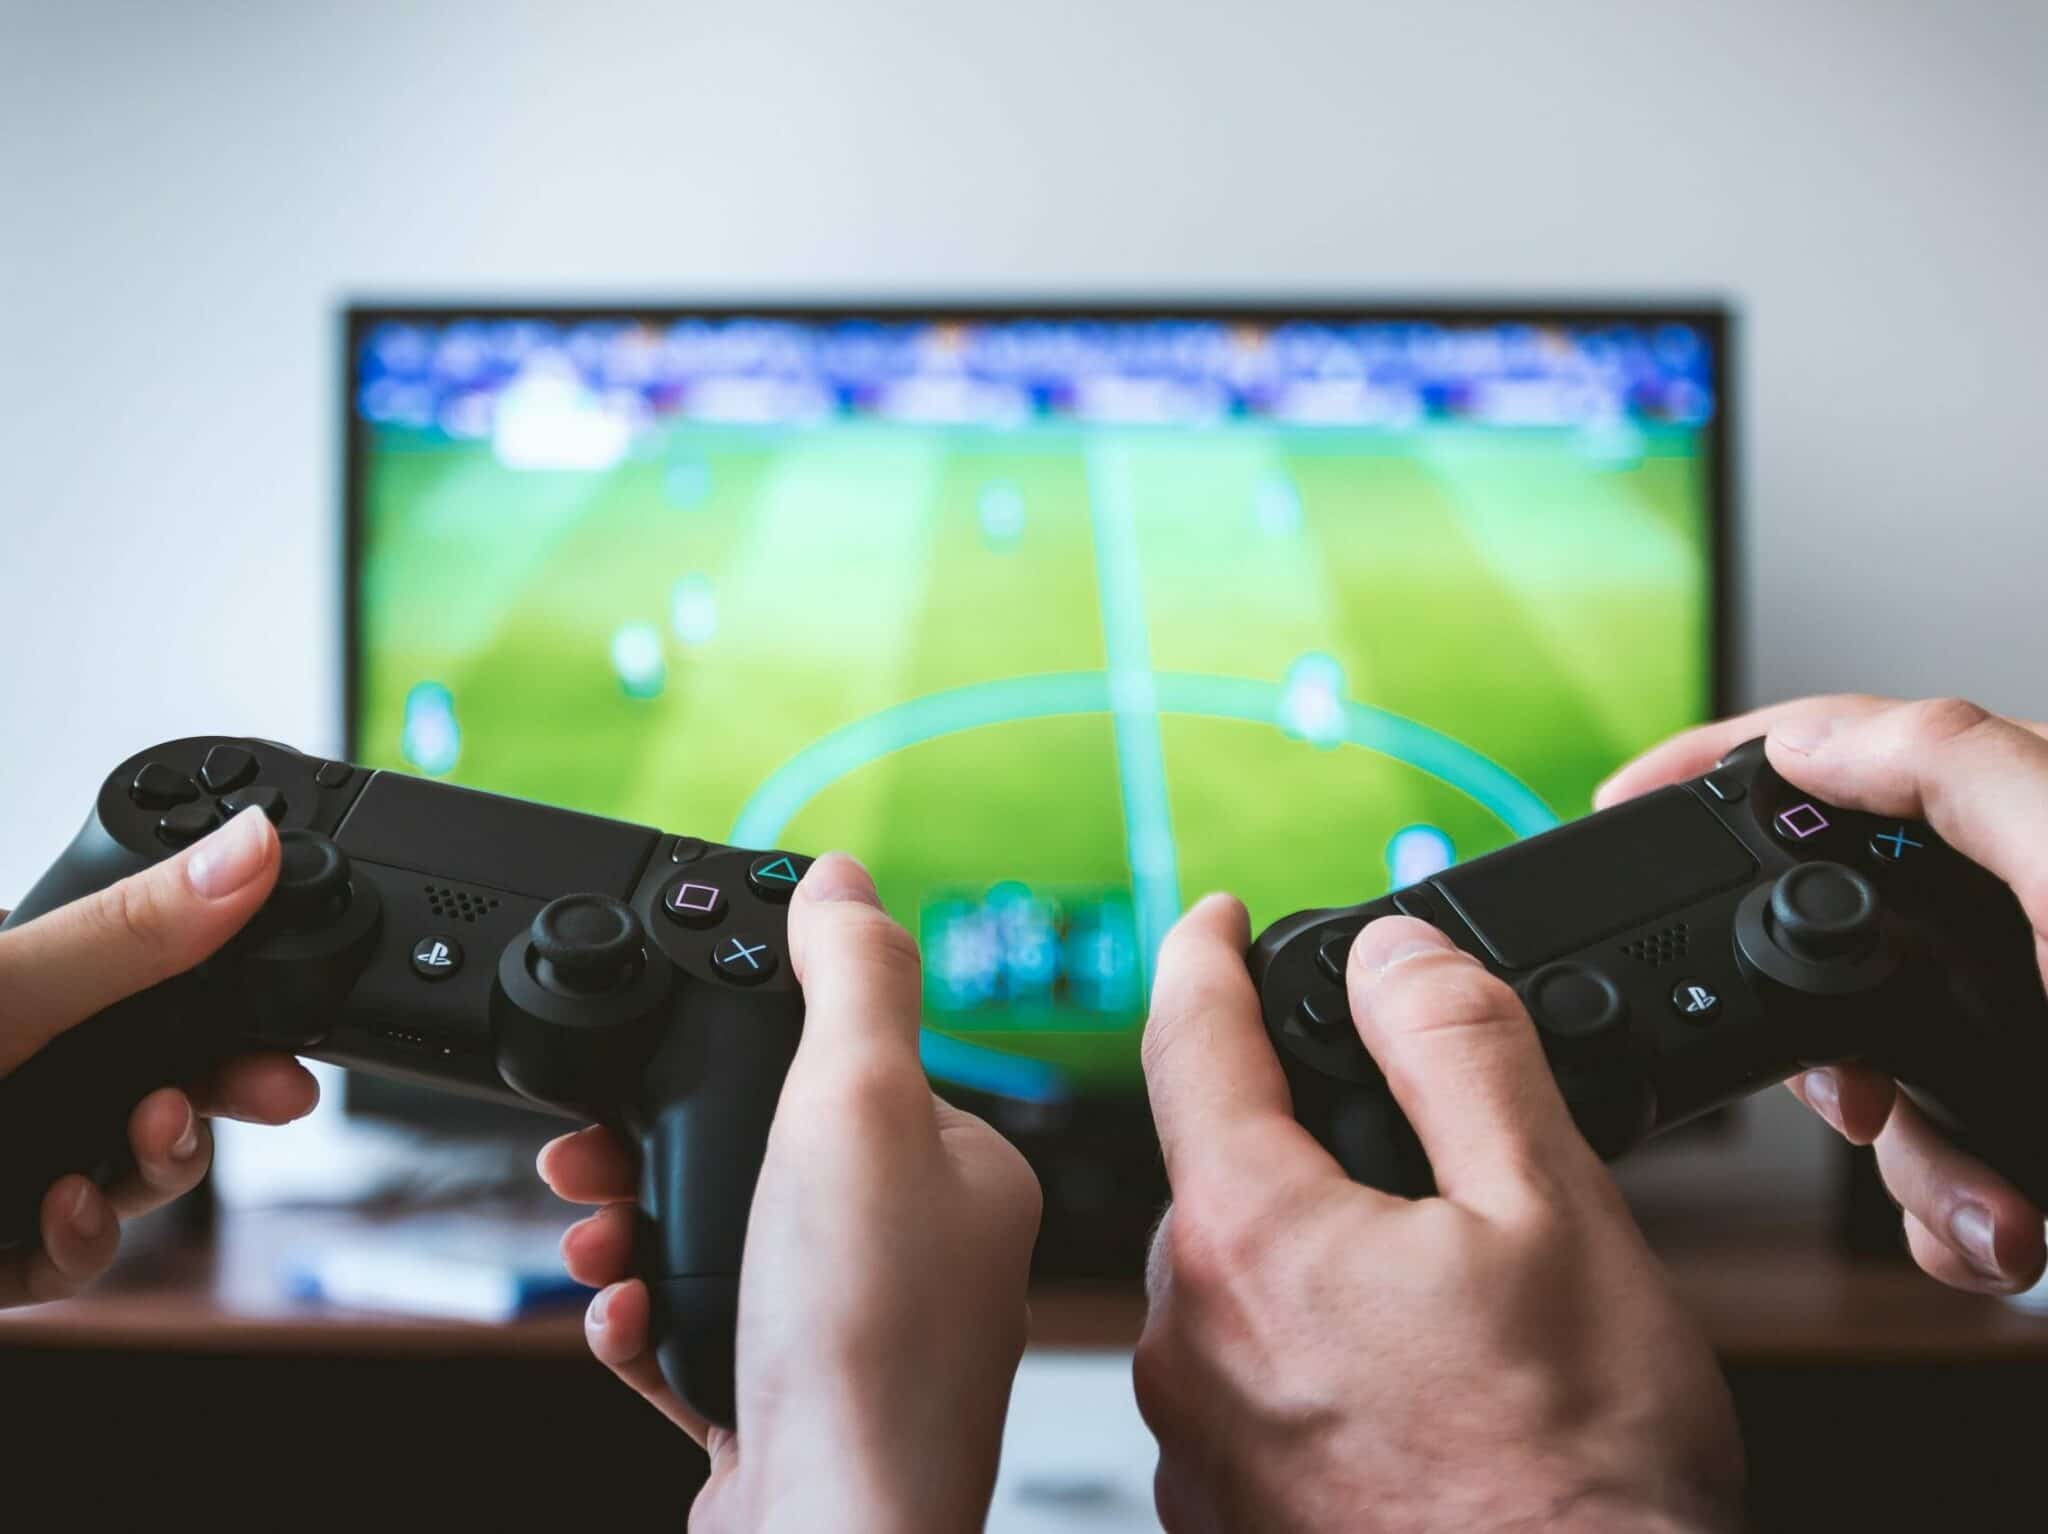 Two people holding video game controllers and in the background is a tv displaying the game they are playing